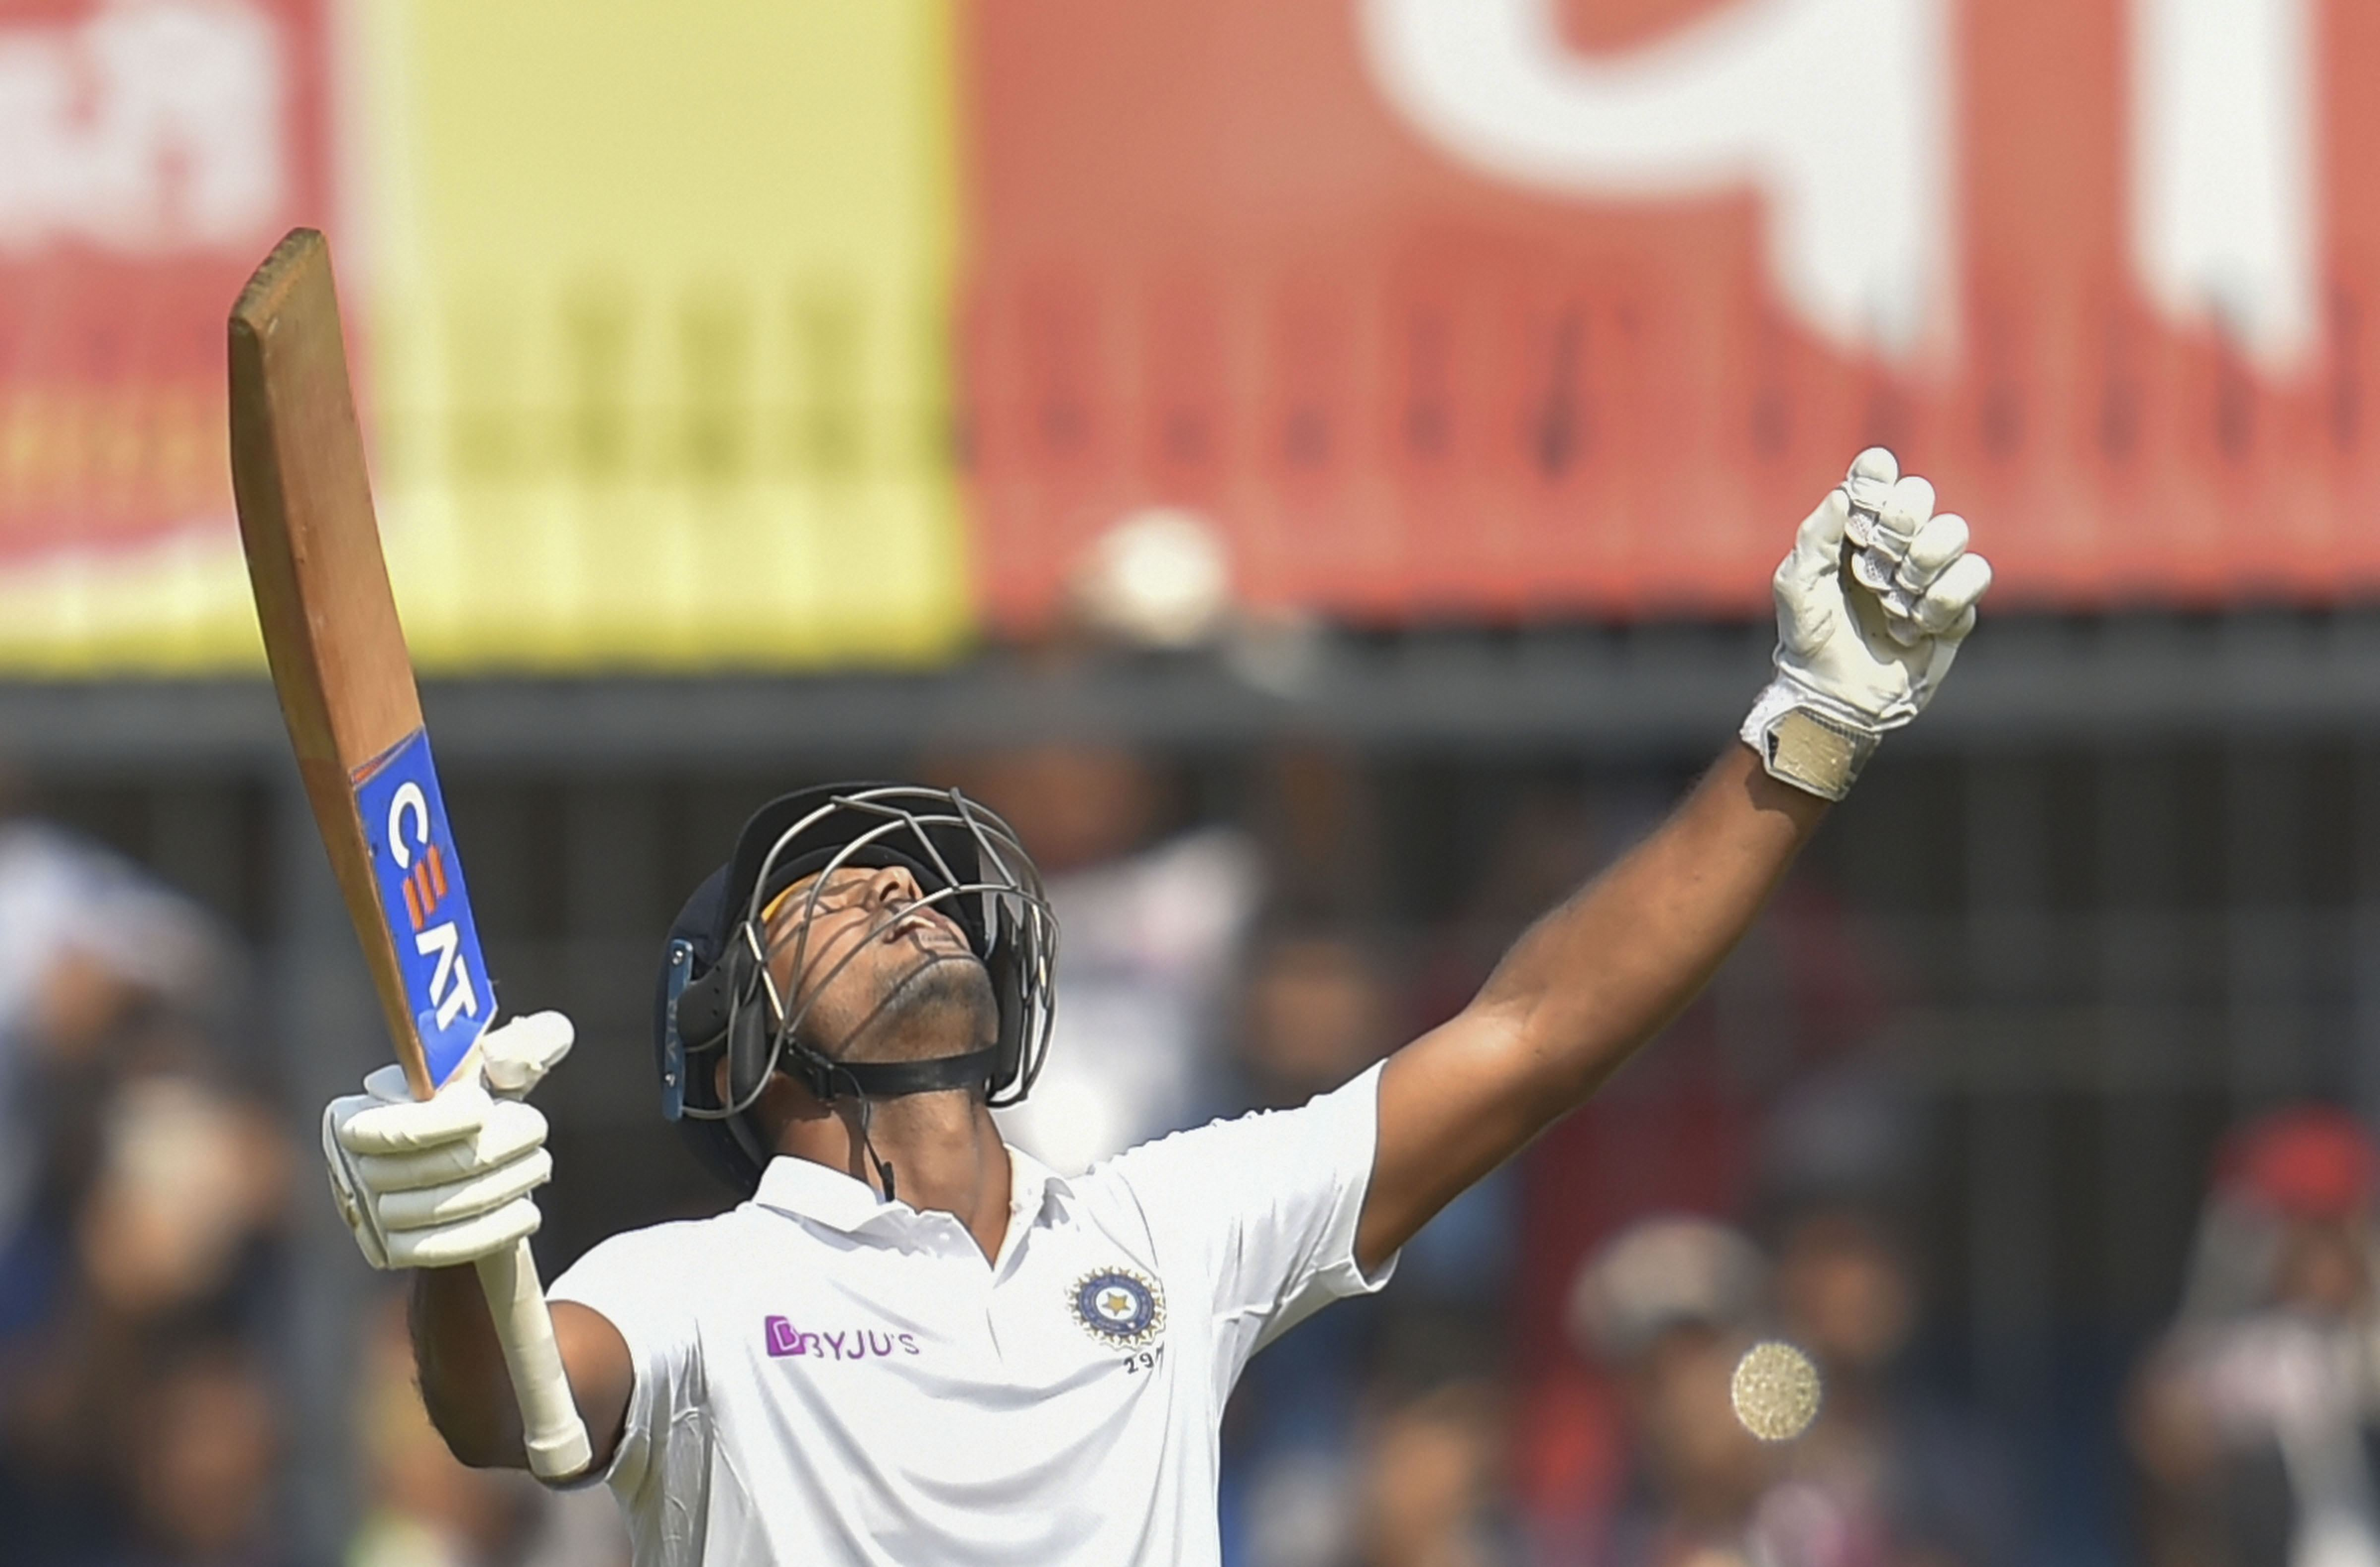 Indian batsman Mayank Agarwal holds up his bat as he reacts after scoring a century on the second day the first cricket test match against Bangladesh, in Indore, Friday, November 15, 2019.